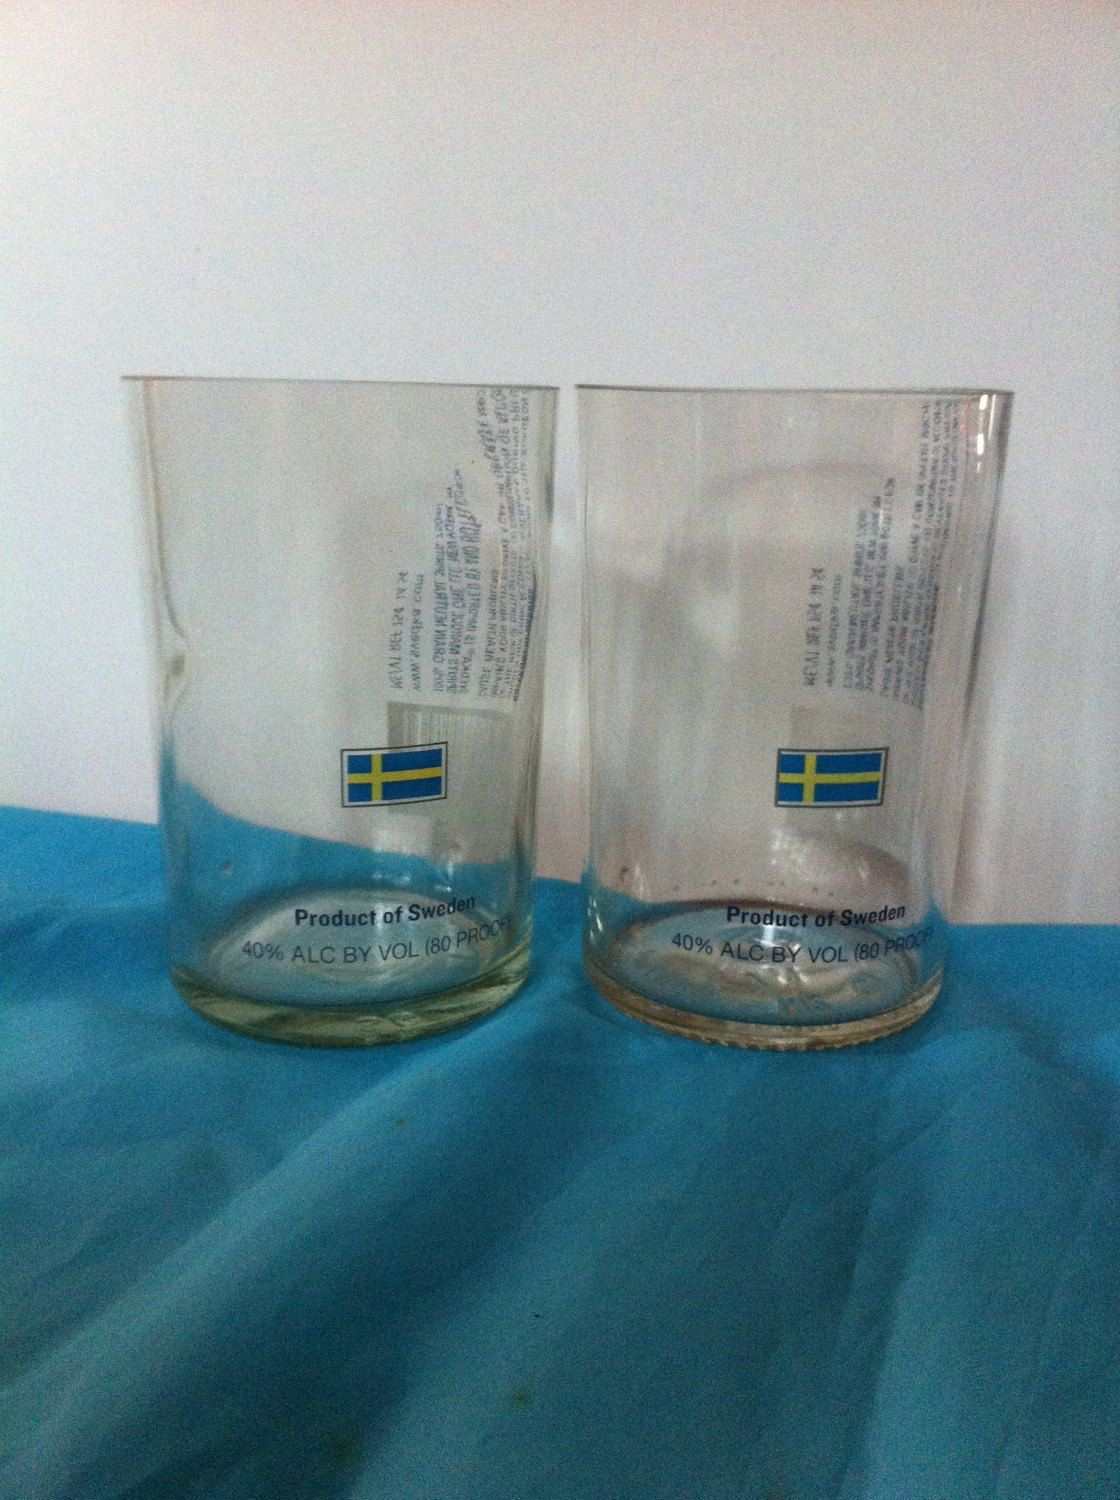 Great tumblers cut from vodka bottles with Swedish Flag silkscreened on it!